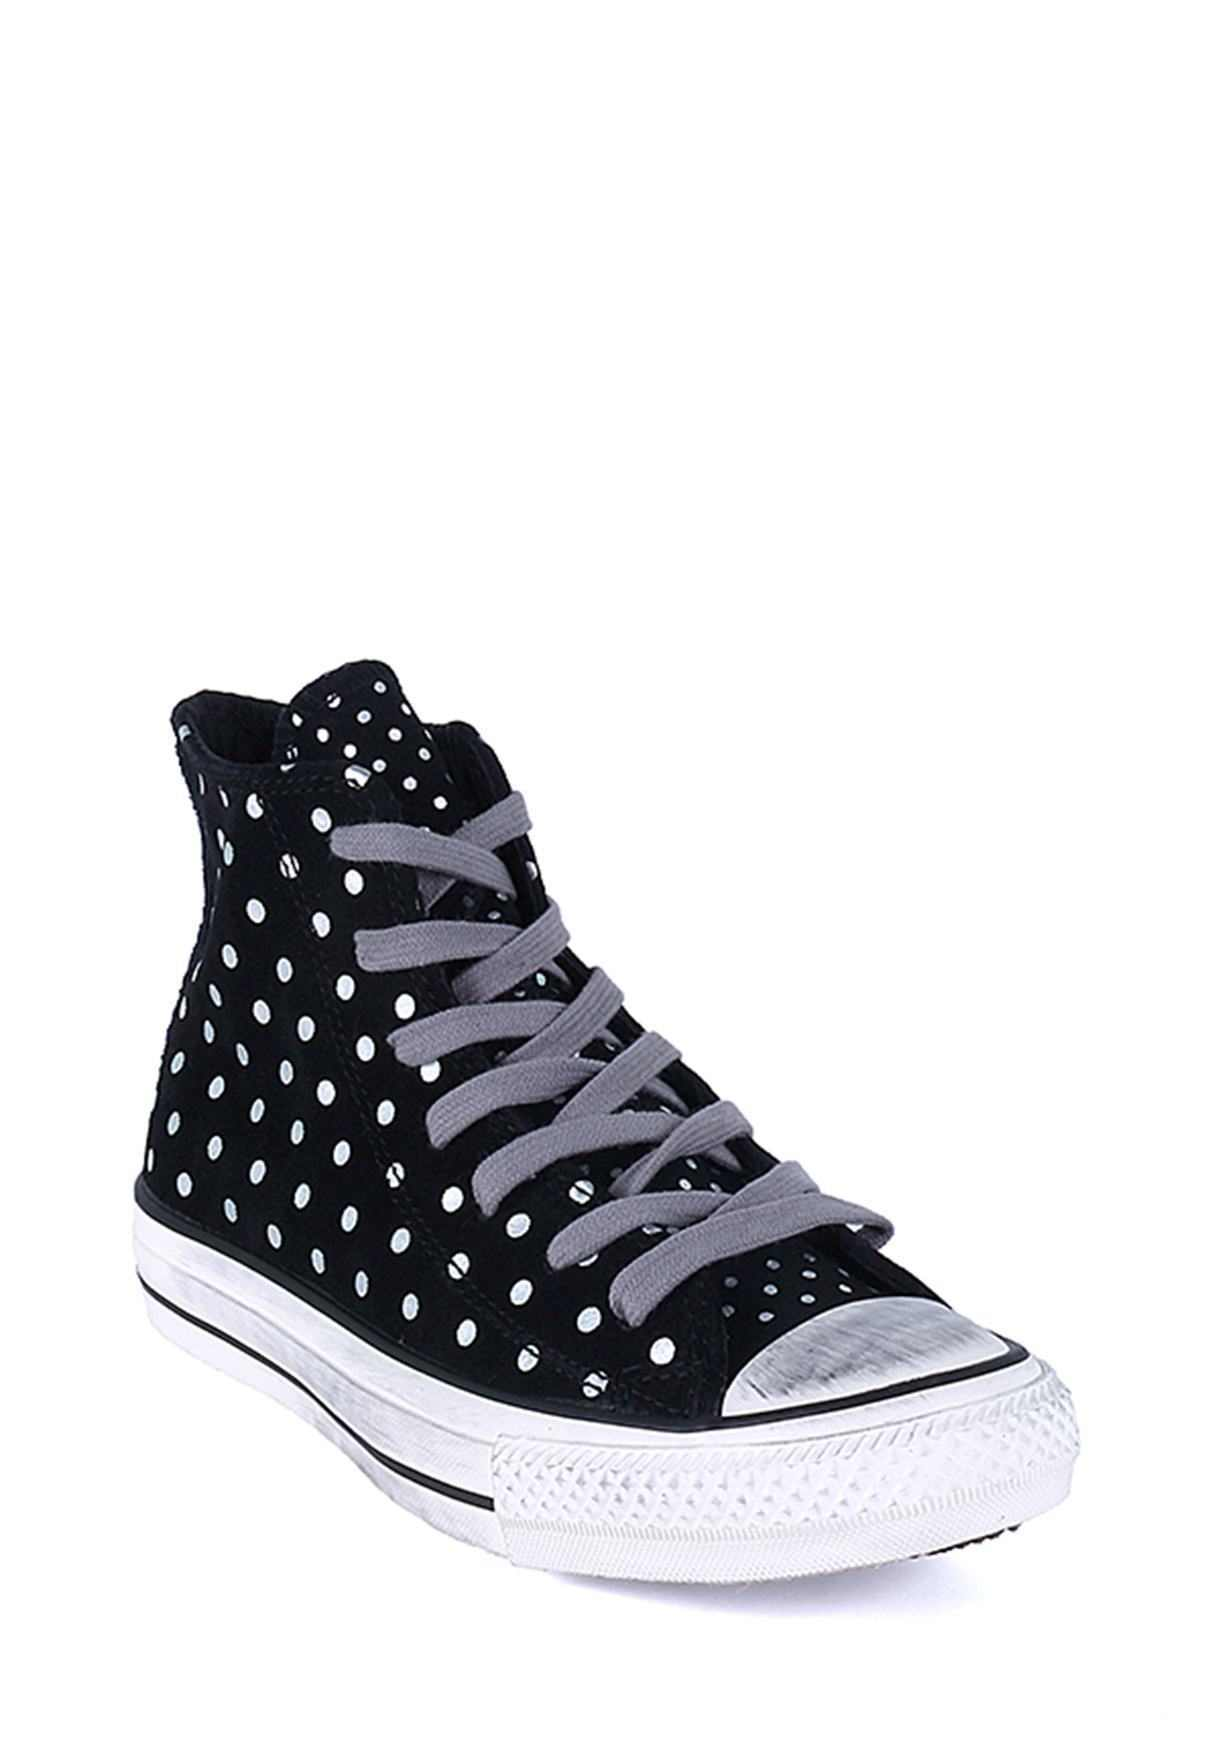 Women's Sneakers Shoes